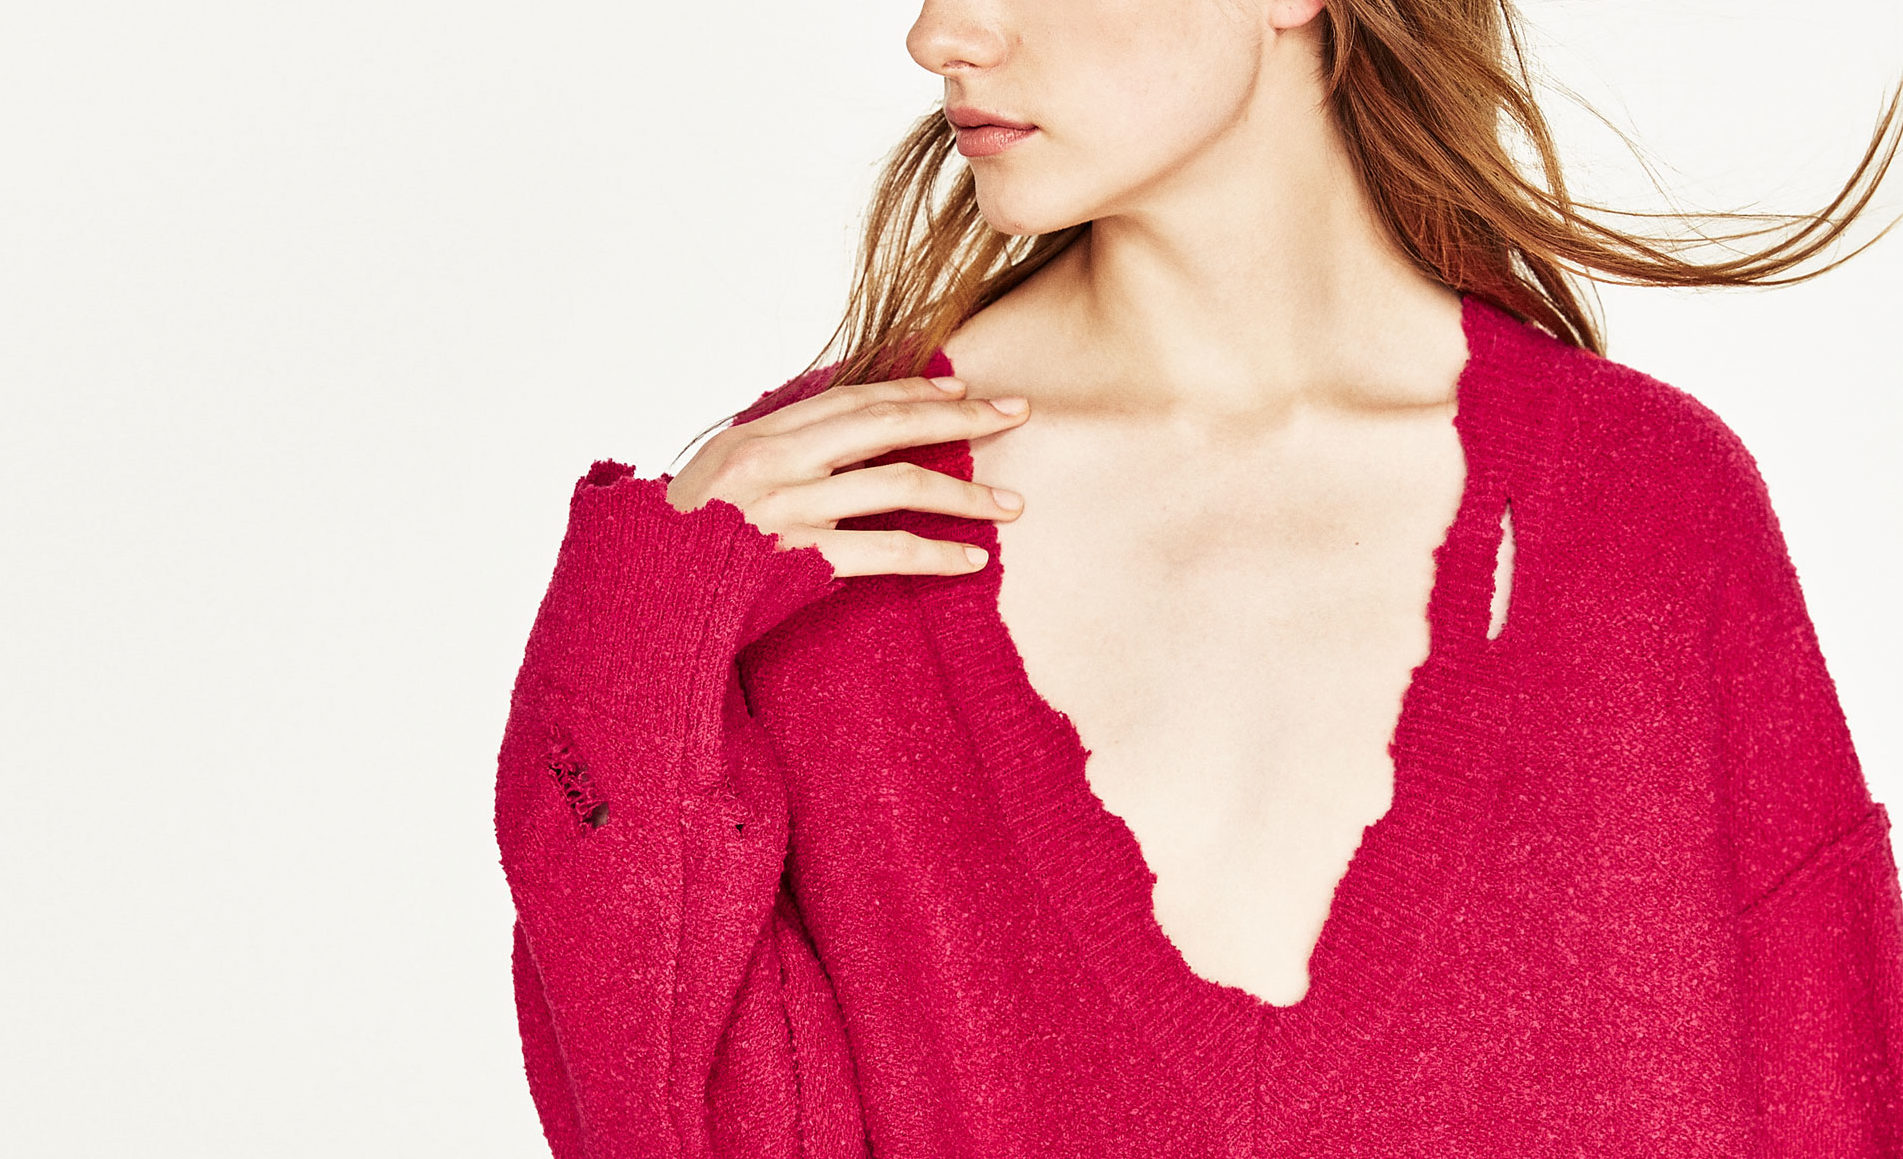 Zara's spring collection has us more than ready for warmer weather already